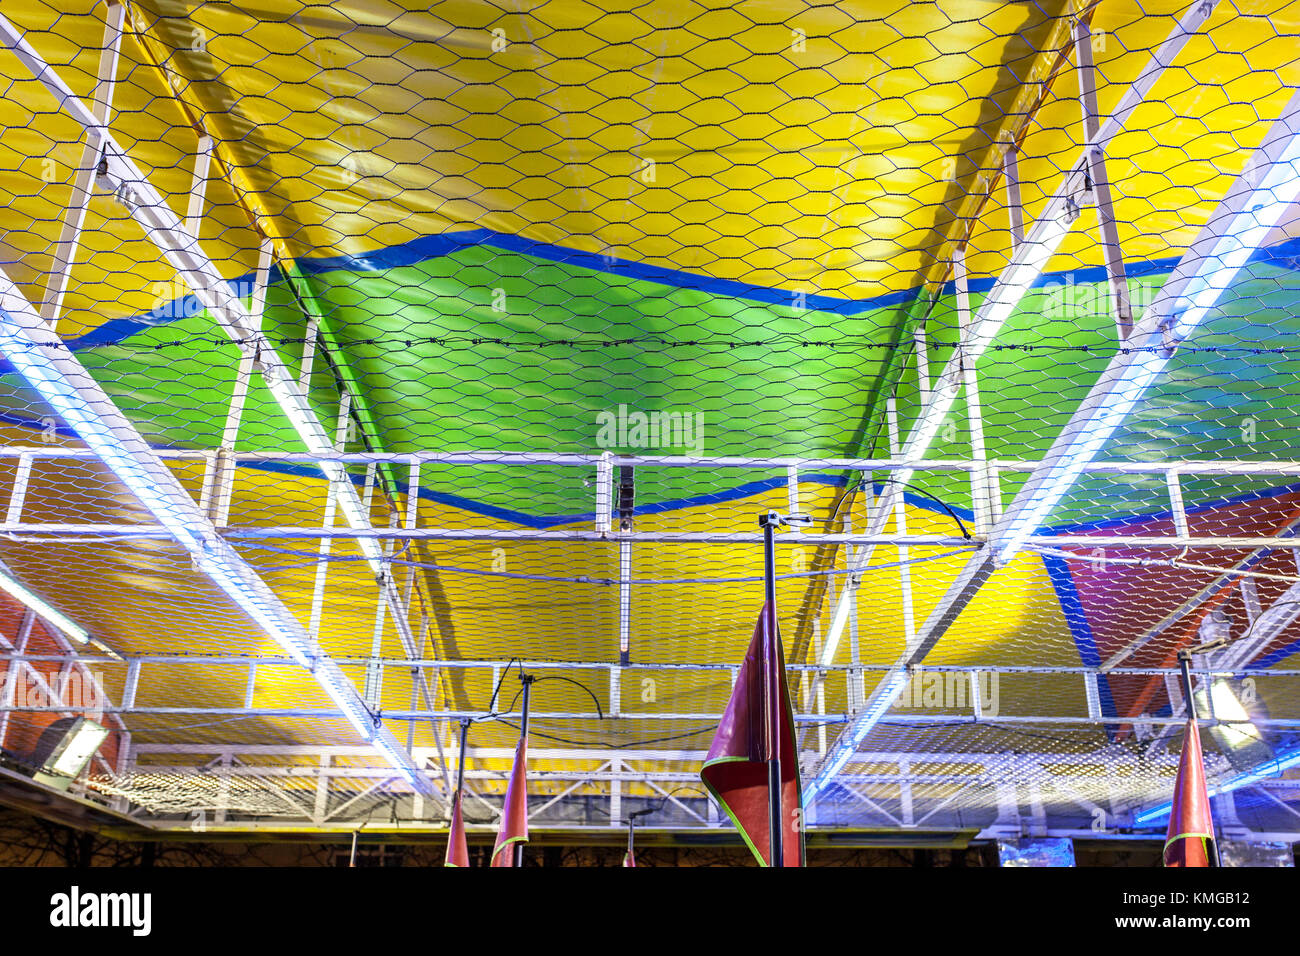 Bumper cars ceiling attraction. Metallic net detail - Stock Image